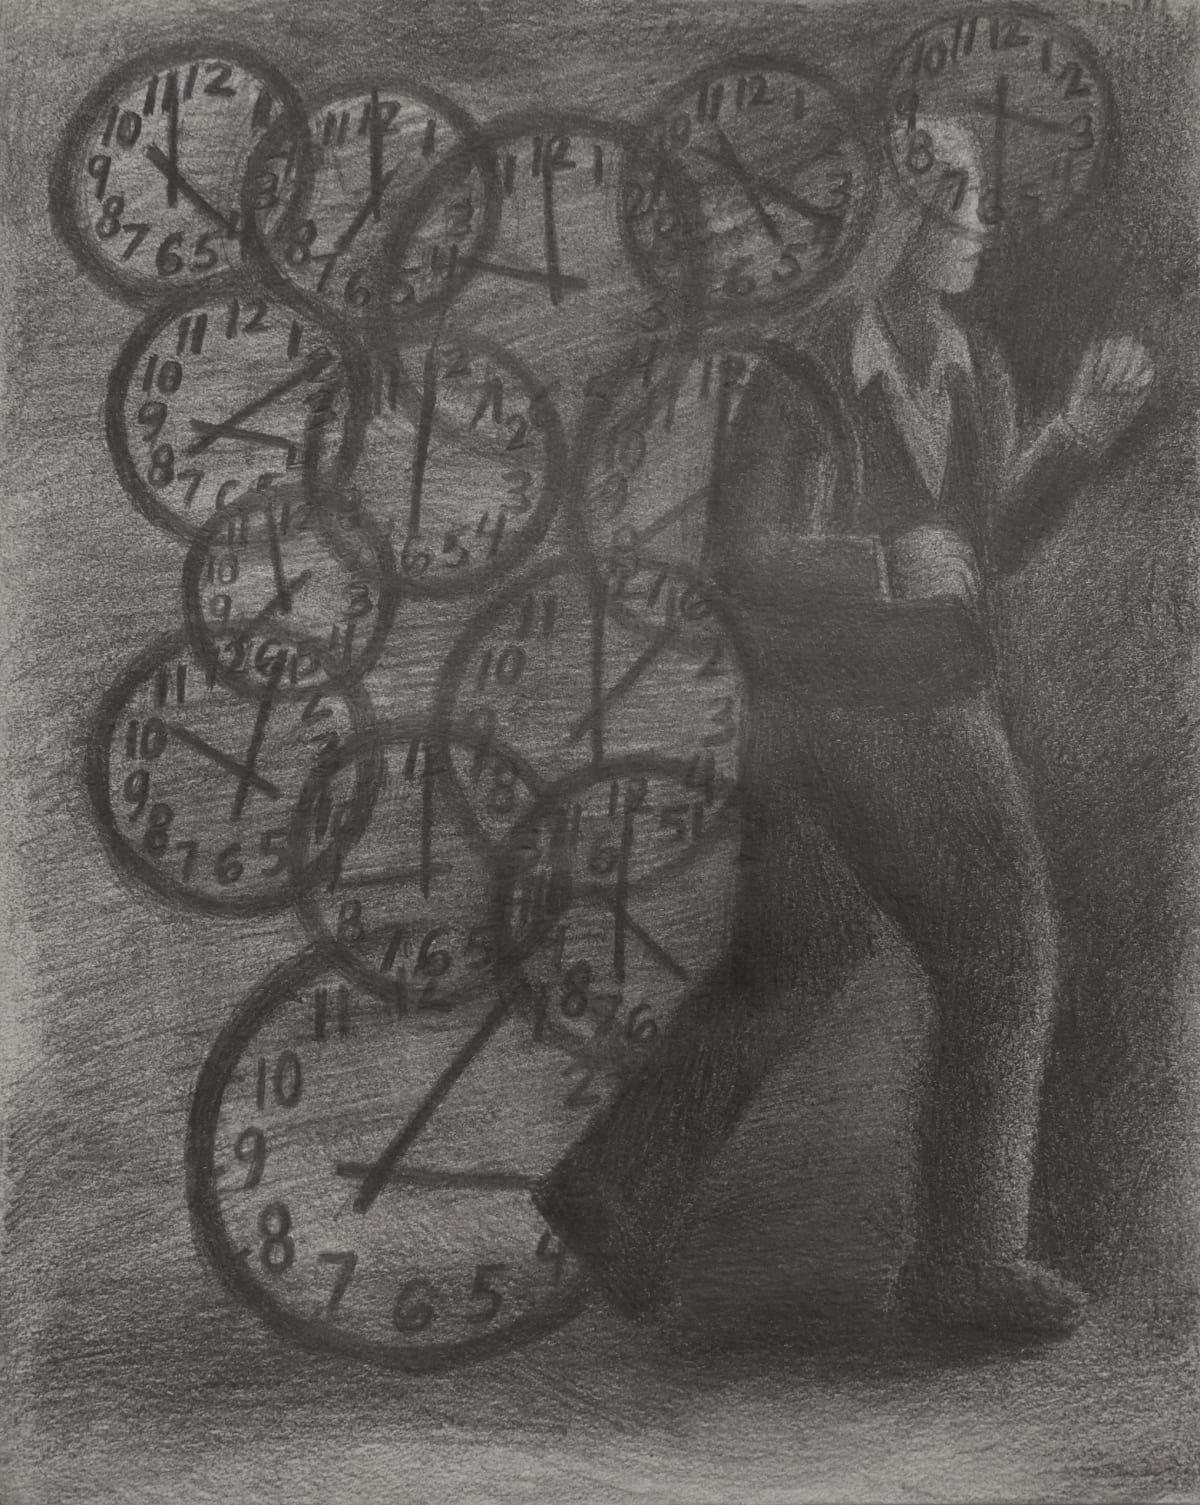 Vanessa Gully Santiago Against the Clock, 2018 Graphite on paper 10 x 8 inches